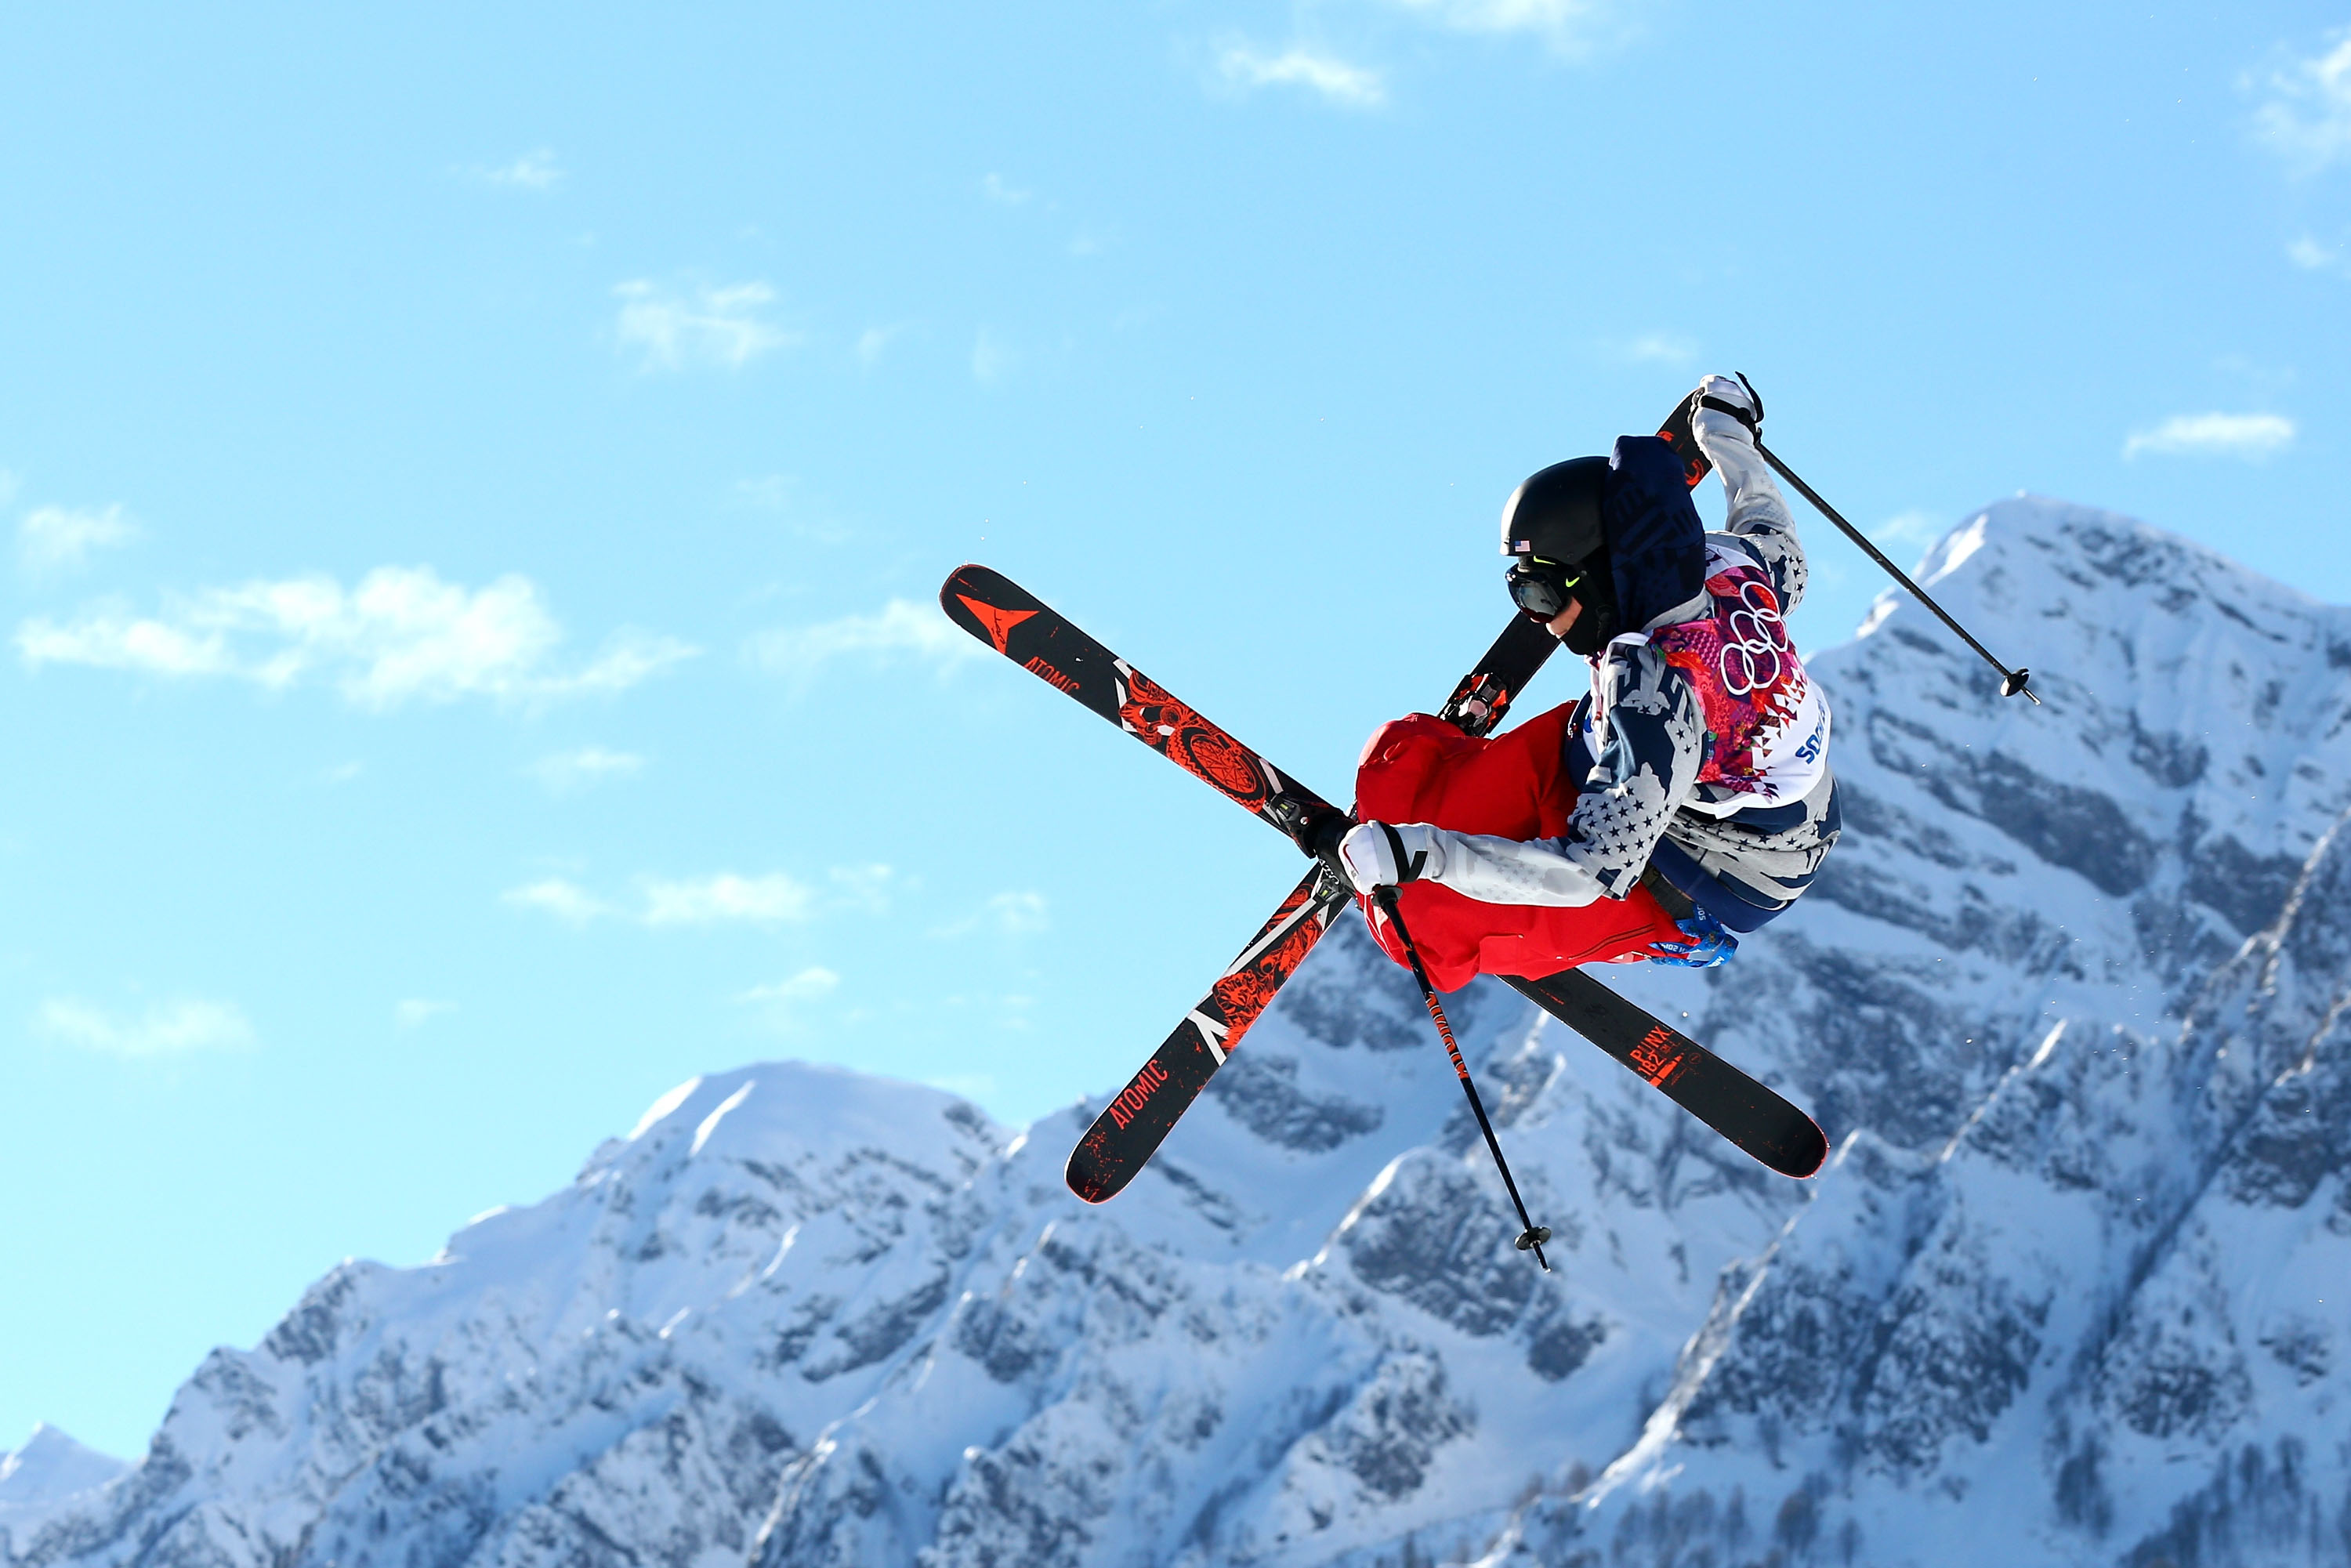 Gus Kenworthy of the United States competes in the Freestyle Skiing Men's Ski Slopestyle Qualification during day six of the Sochi 2014 Winter Olympics at Rosa Khutor Extreme Park on February 13, 2014 in Sochi, Russia.